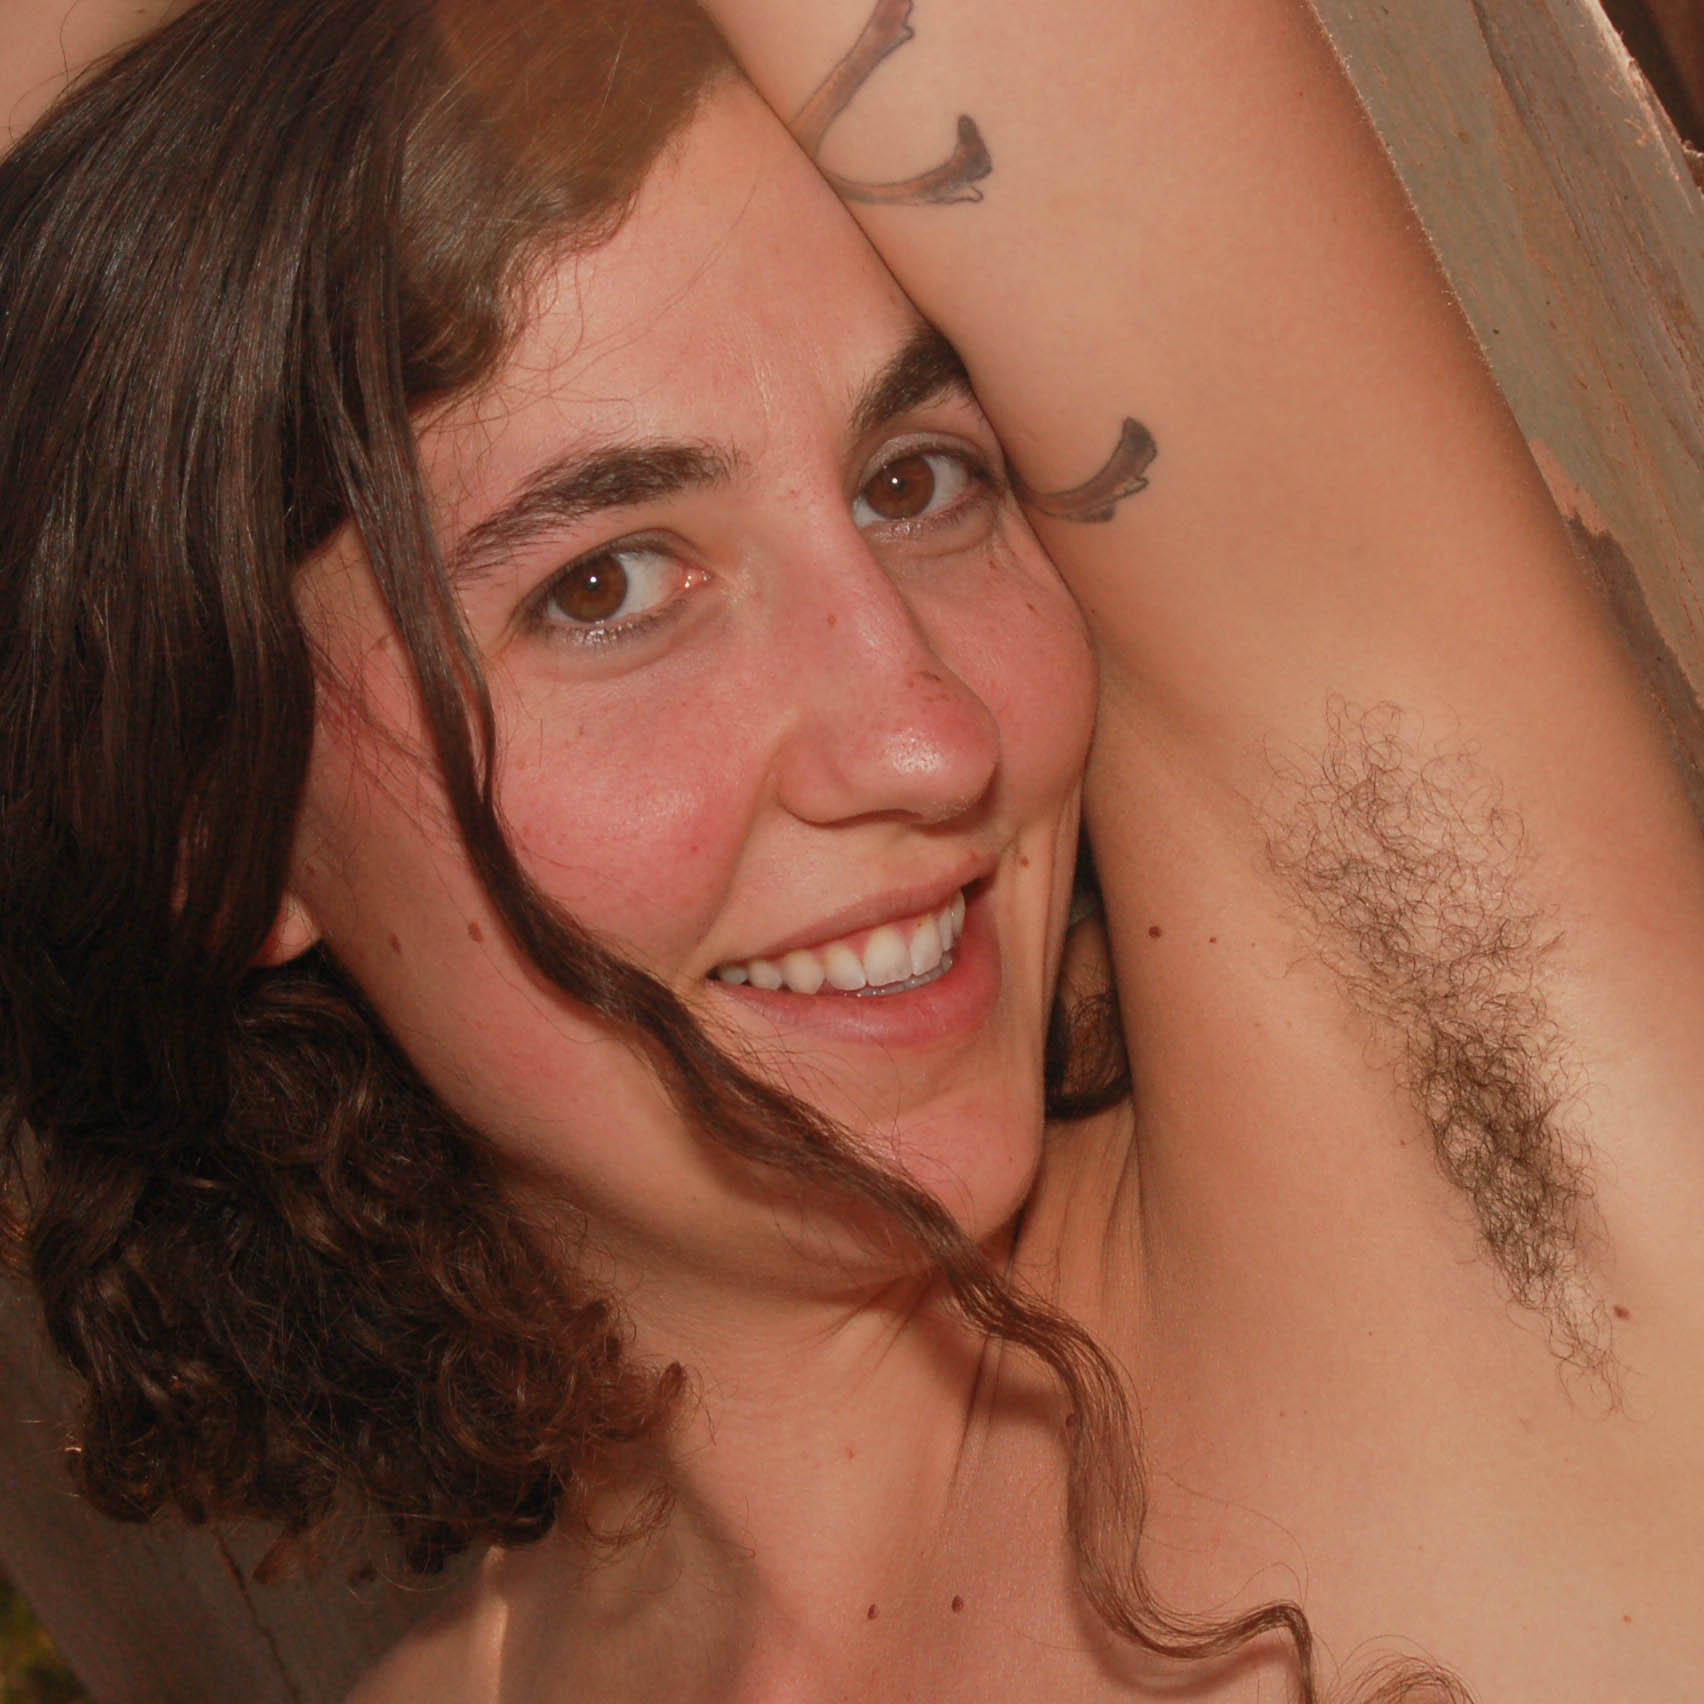 Gorgeous sexy naked eomen with armpit hair, chinese youtube girl nude picture